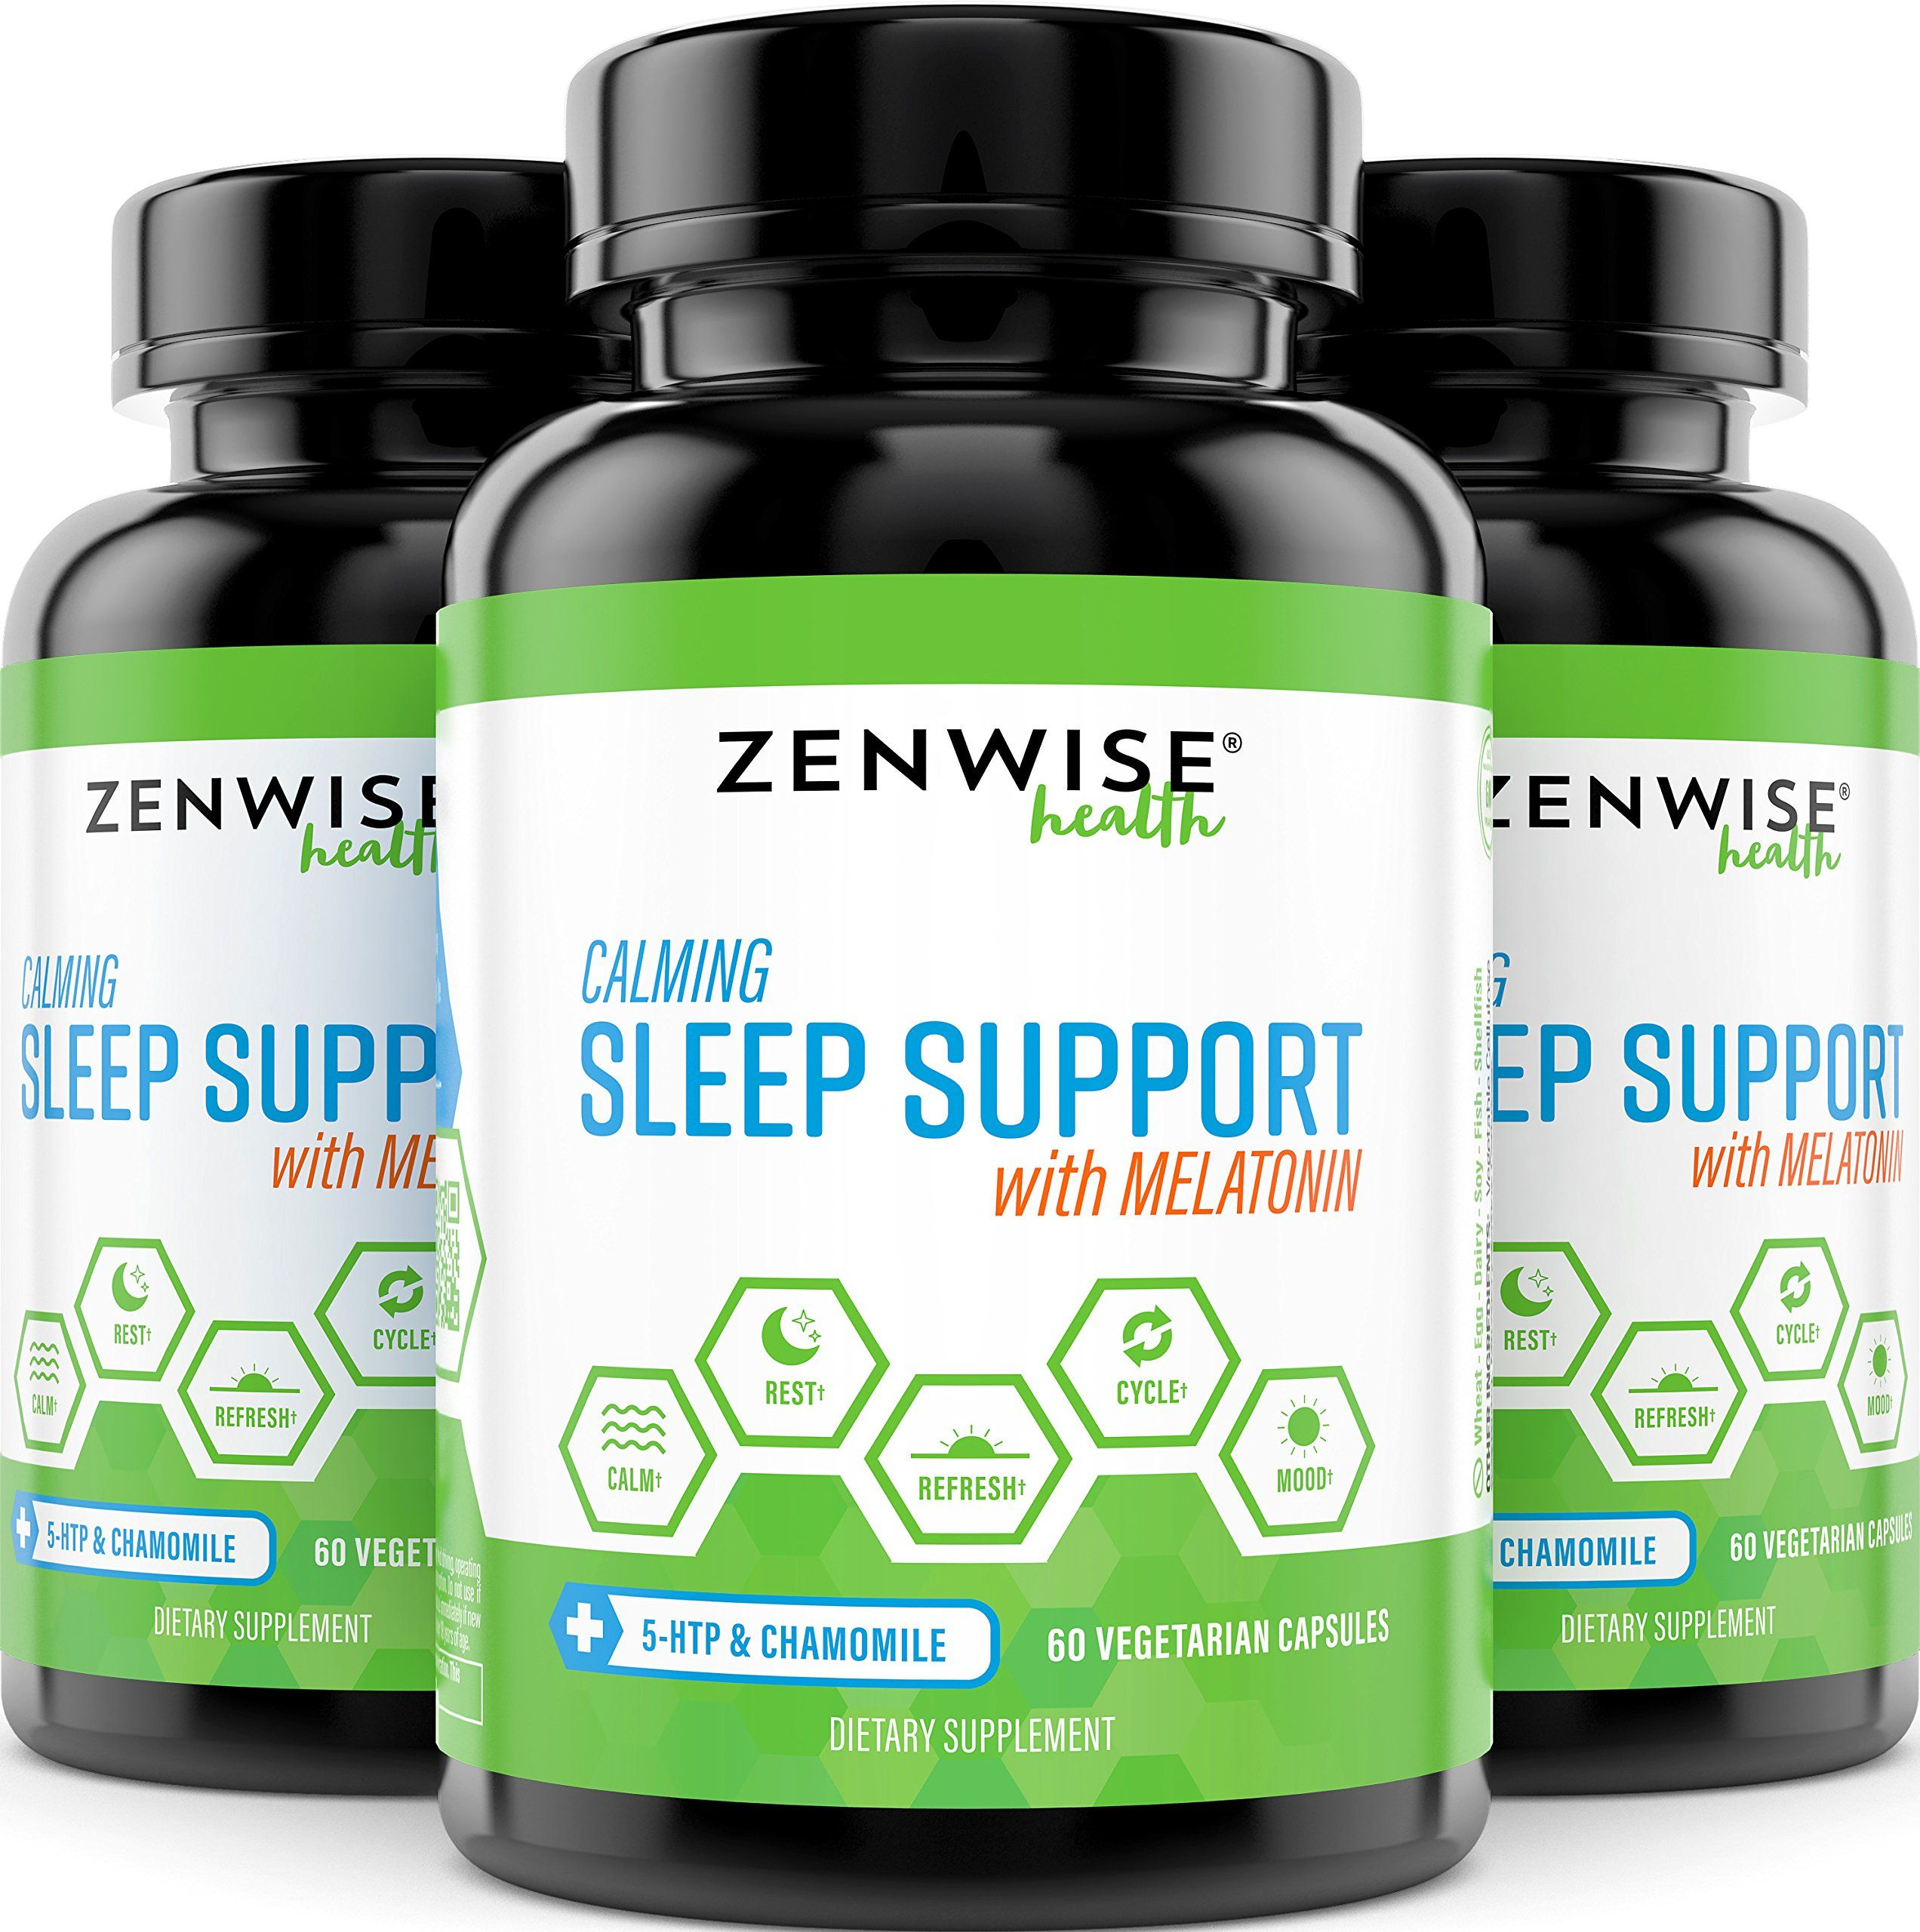 Natural Sleeping Aid Nighttime Sleep Support Supplement With 100 MG 5 HTP  Magnesium to Fall Asleep